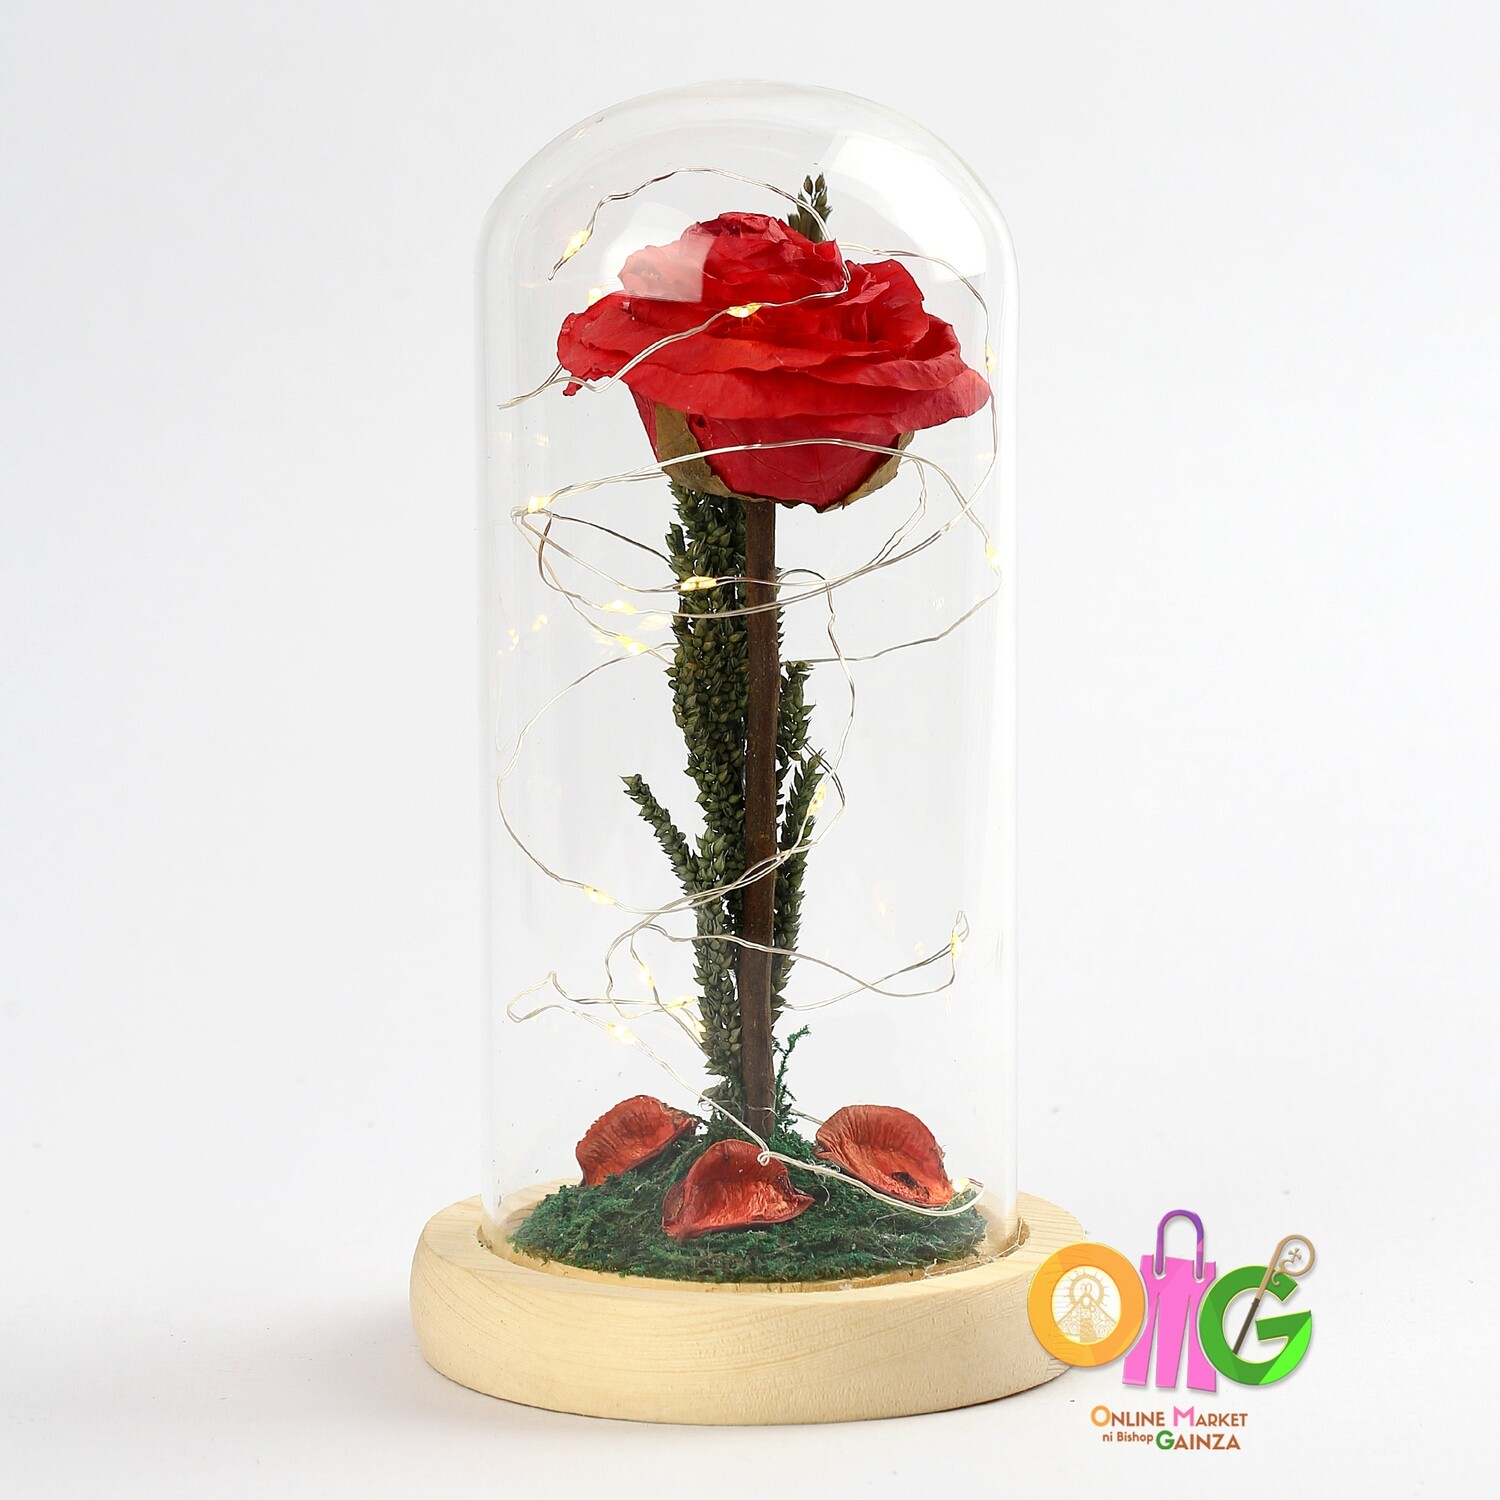 Cahs Nostalgic Petals Flower Shop - Glass Dome (Beauty and the Beast Inspired)